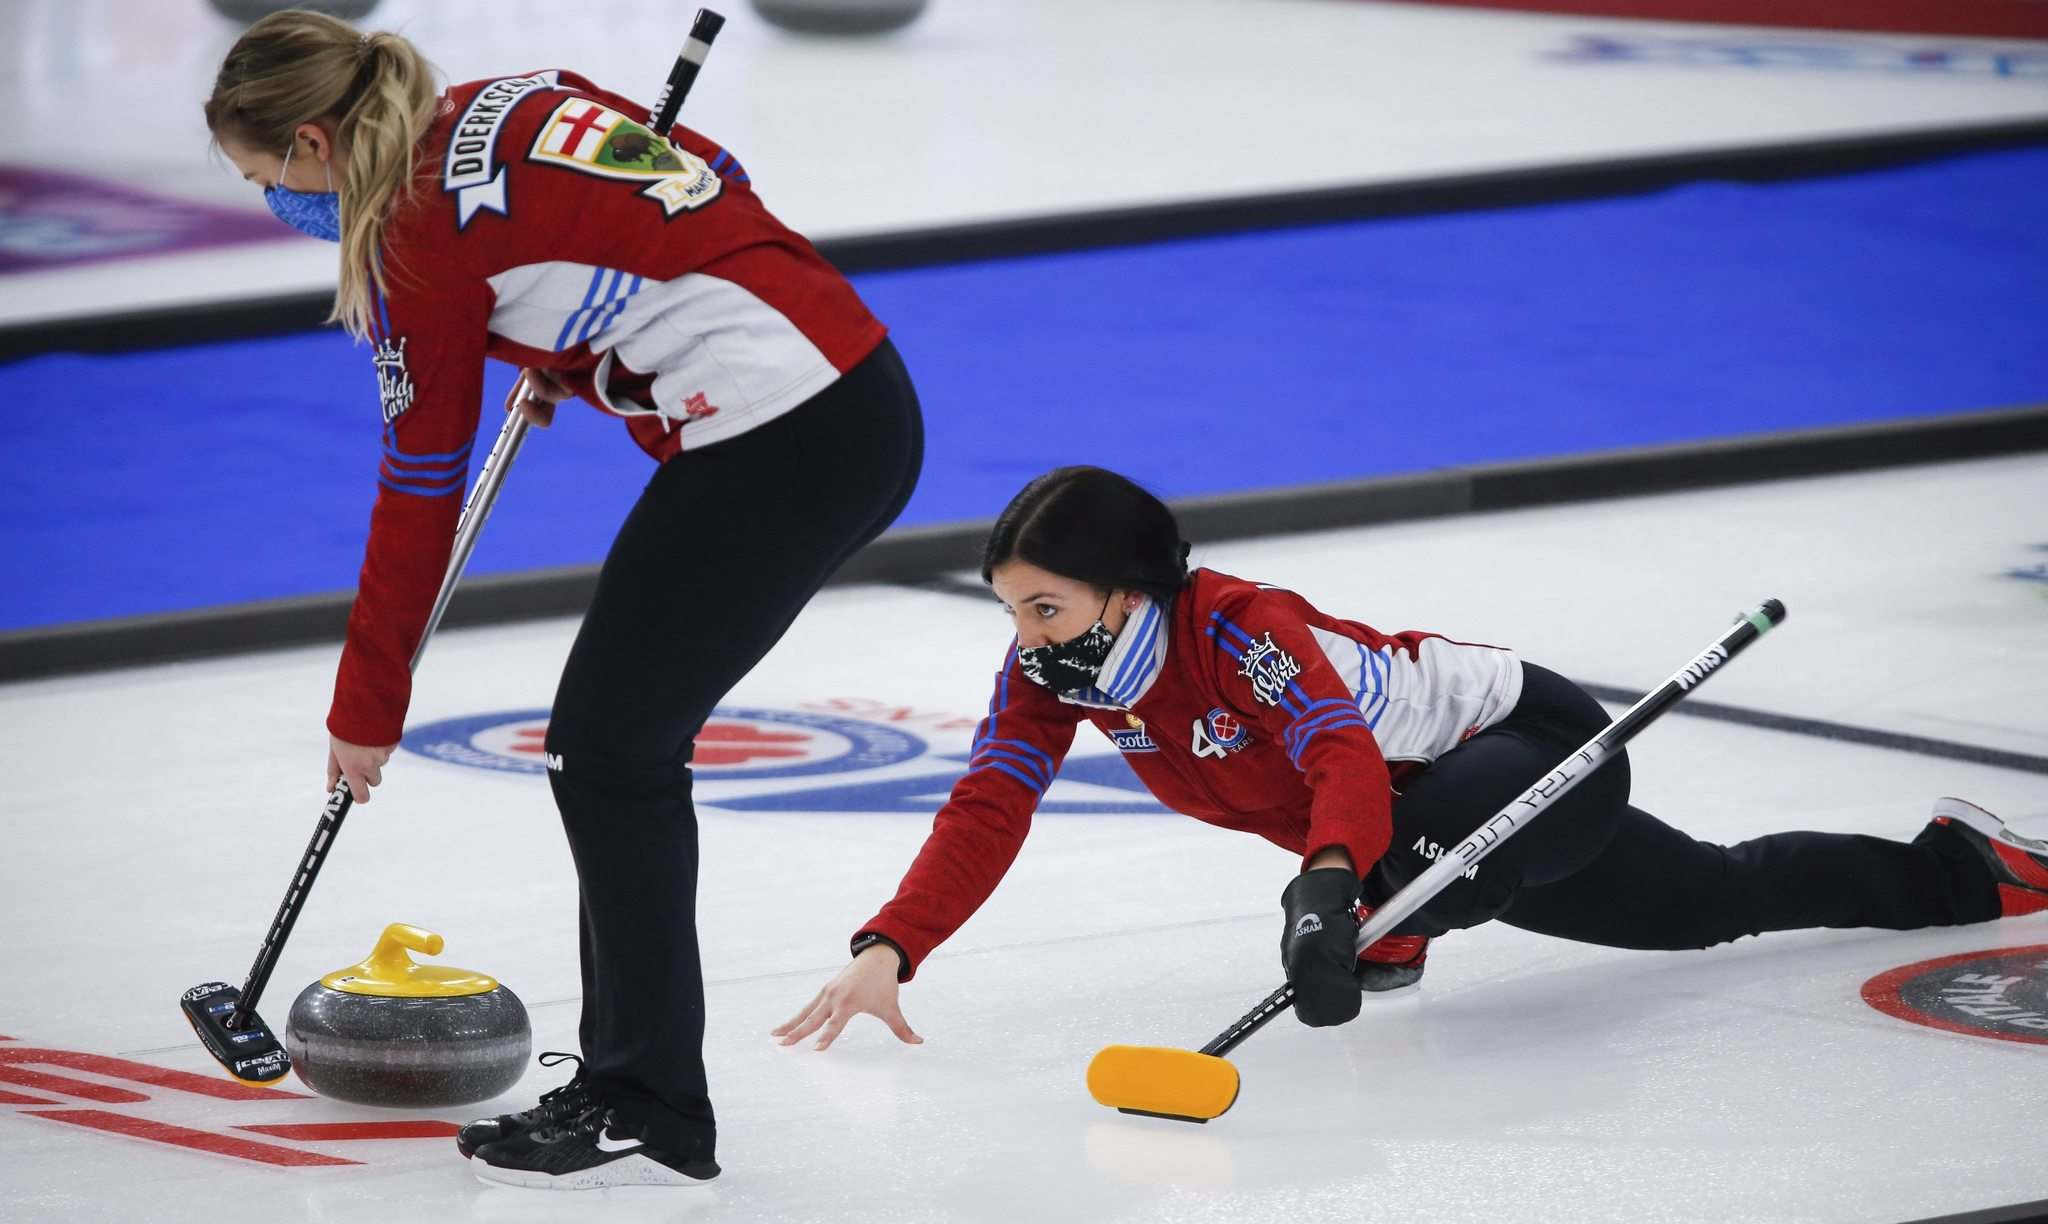 Jeff McIntosh / The Canadian Press</p><p>Second Katherine Doerksen applies the brush while skip Beth Peterson releases a shot during a practice session at the Scotties Tournament of Hearts in Calgary on Thursday.</p></p>